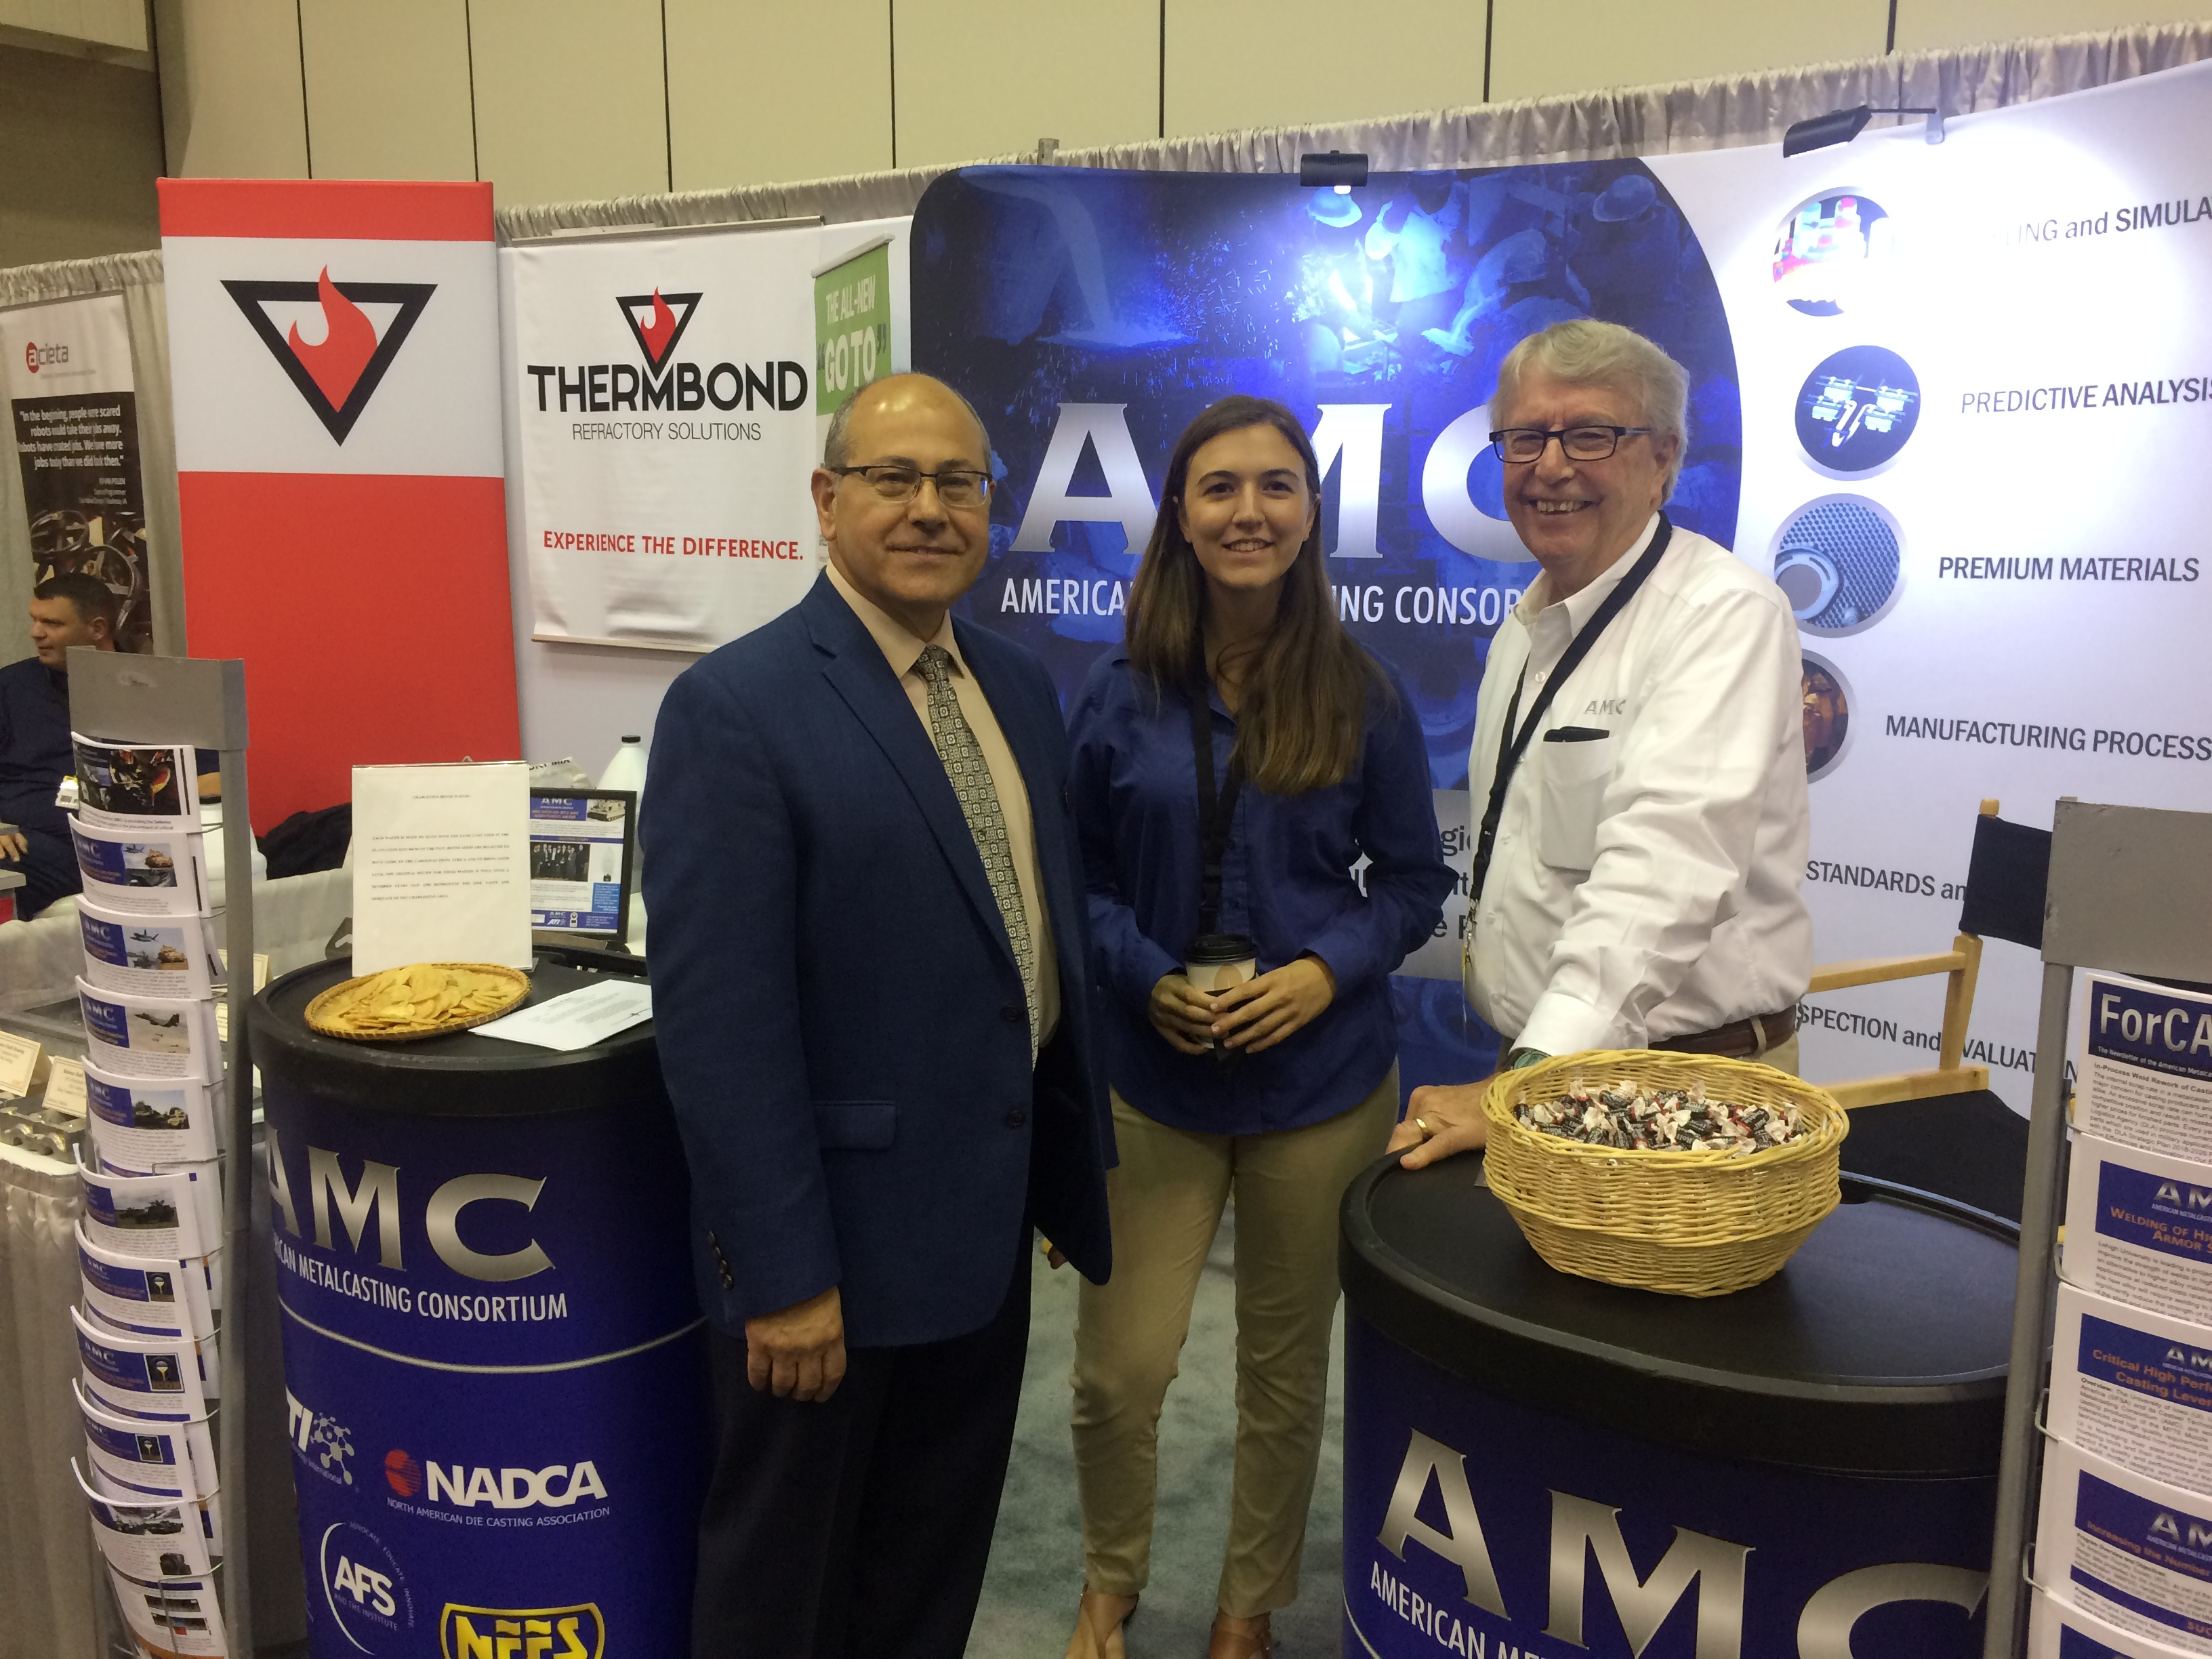 Steve, Julia, and Jim at the 2018 NADCA Die Casting Congress